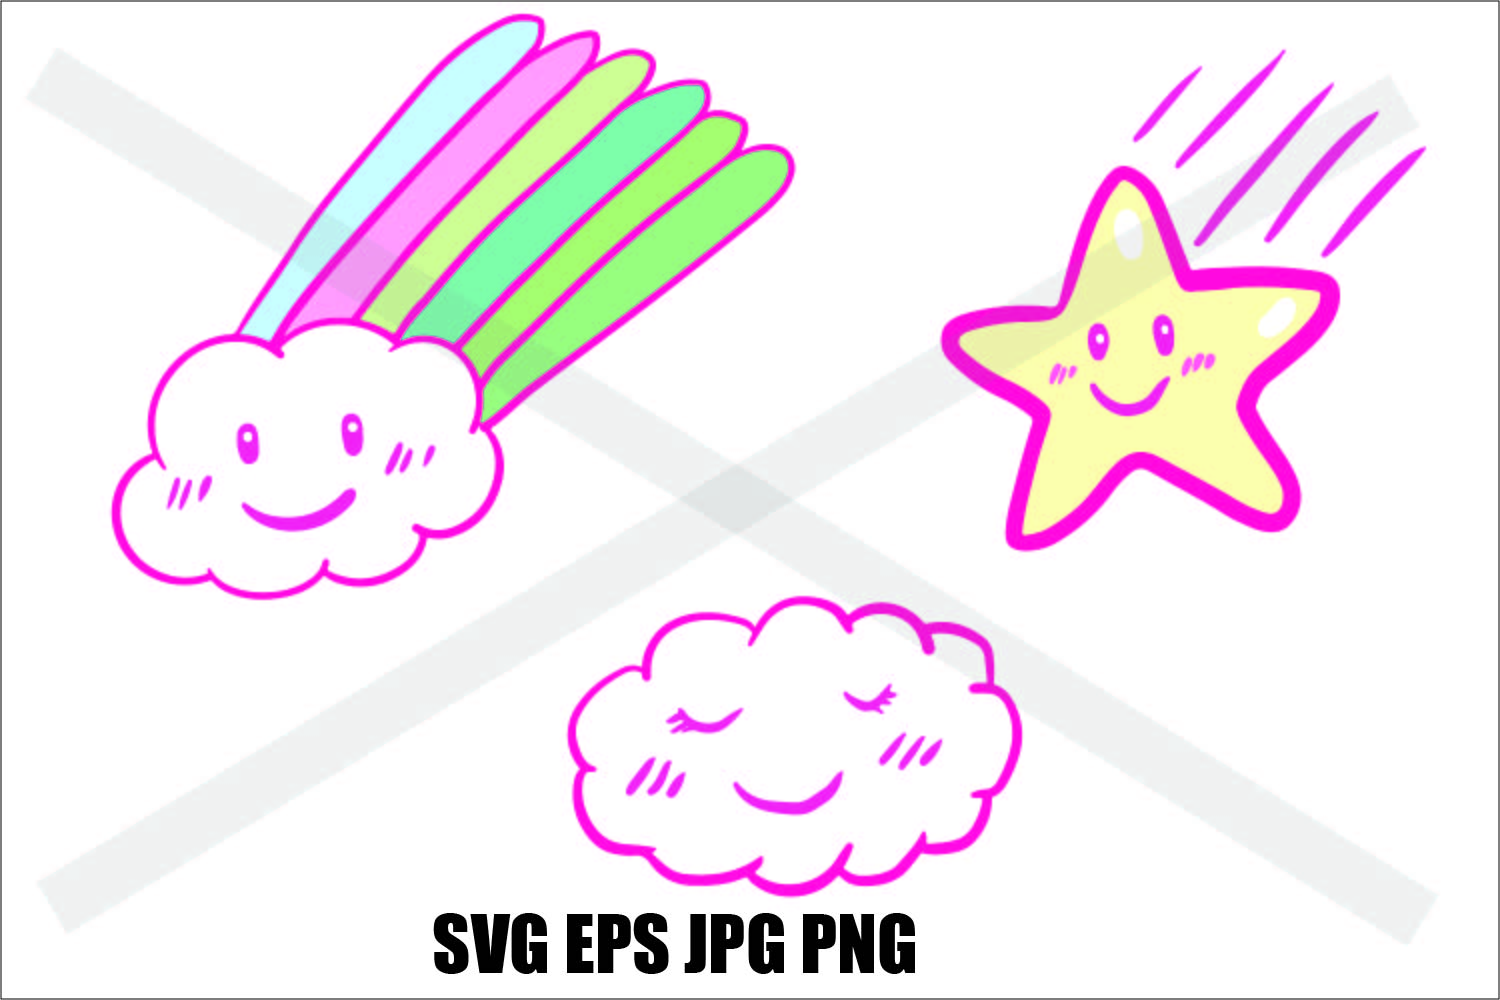 Stars and cloud- SVG EPS JPG PNG example image 1